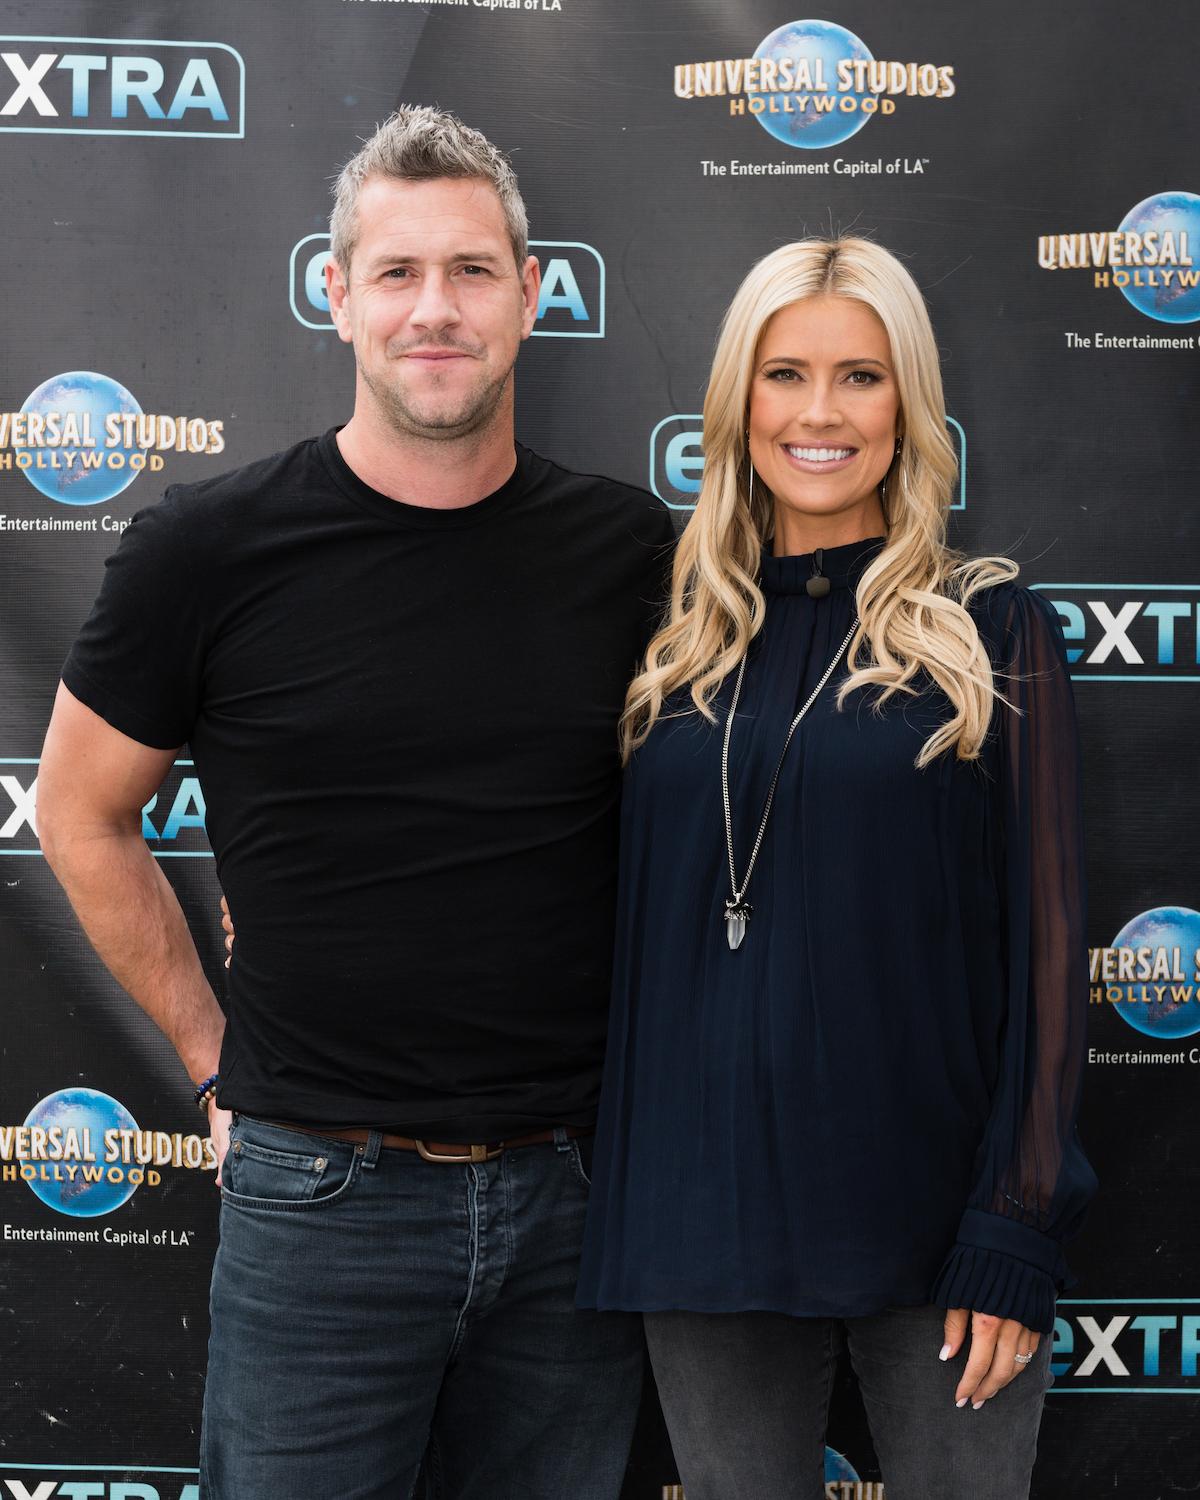 Ant Anstead and Christina Haack when they were married in 2019